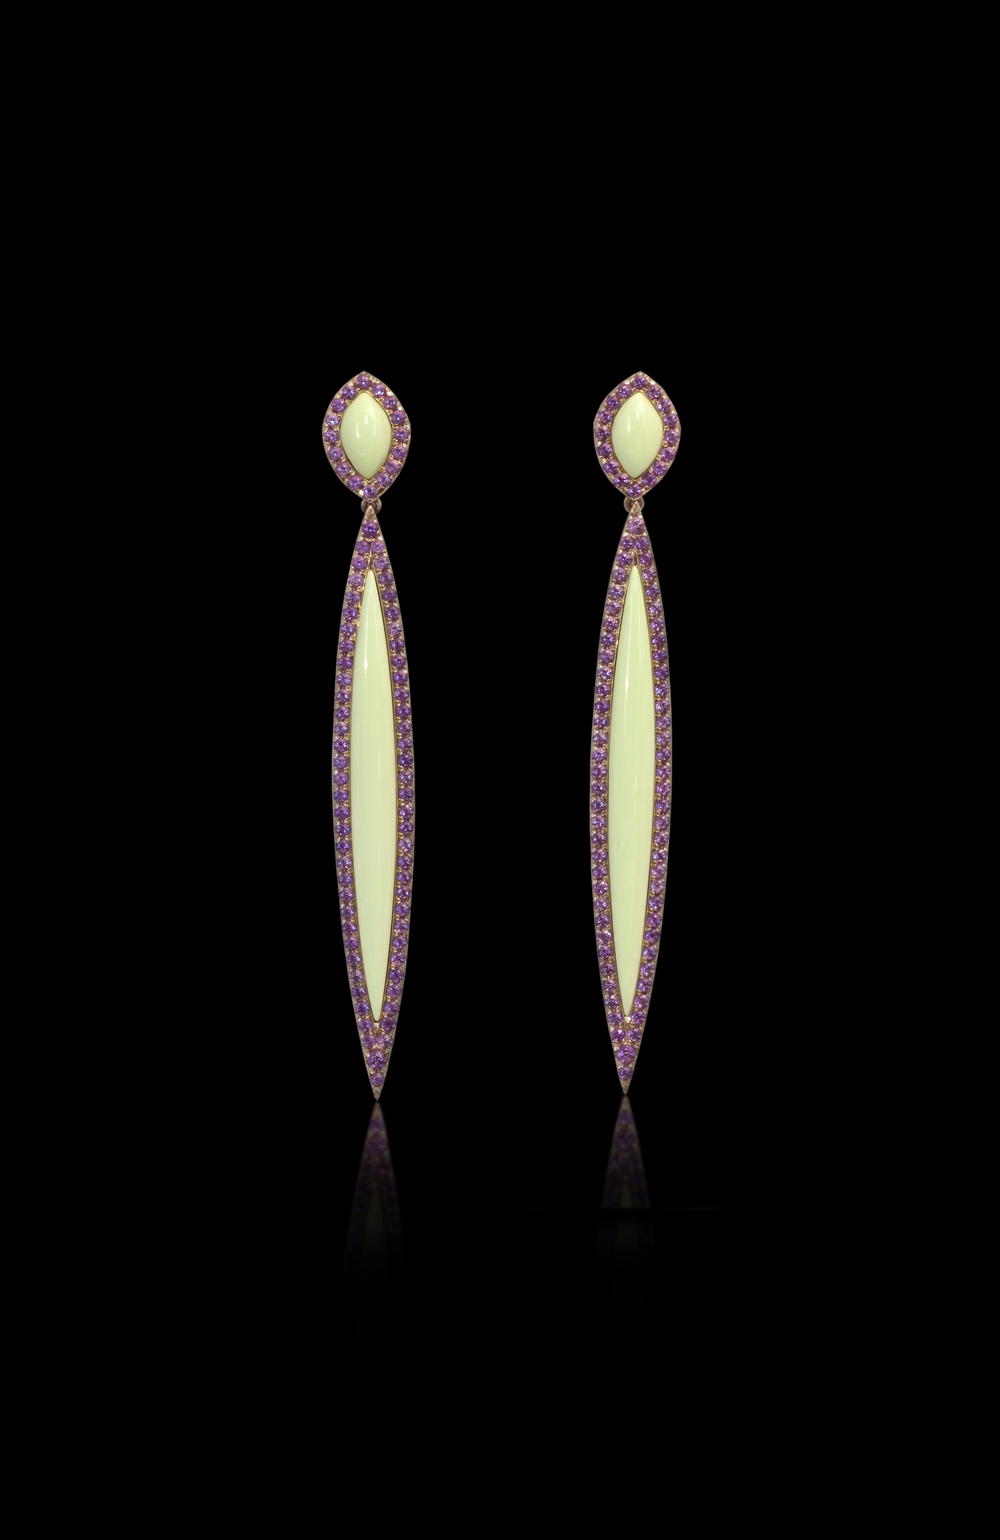 Colorful Princess Color nourishes deeply emotions that cannot be ignored. Earrings in 18 karat Yellow Gold, with Amethyst and lemon Chrysophrase $8,000